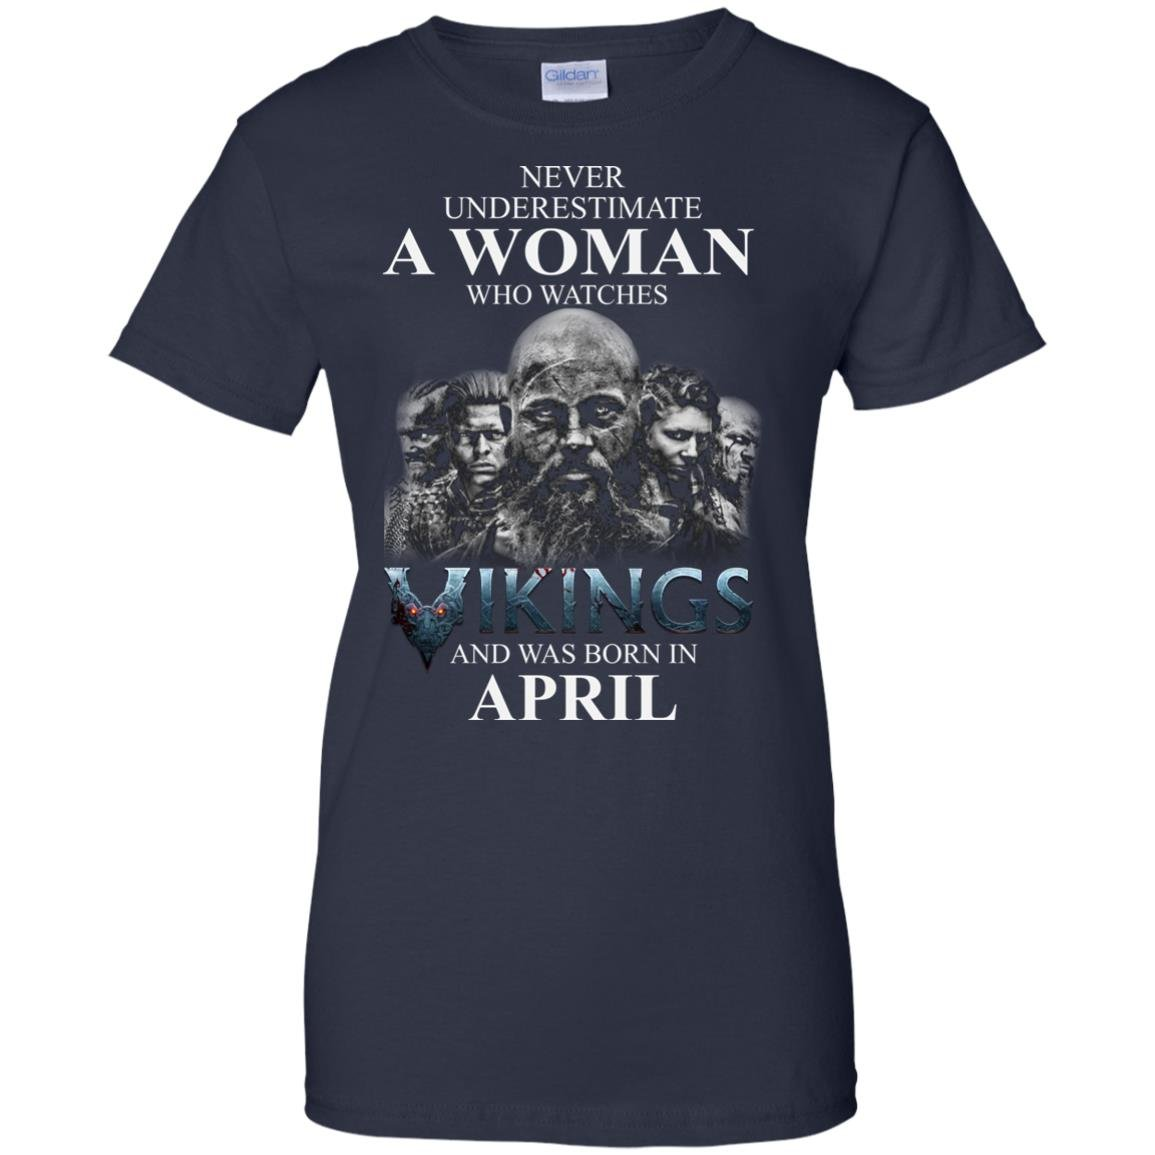 image 1326 - Never Underestimate A woman who watches Vikings and was born in April shirt